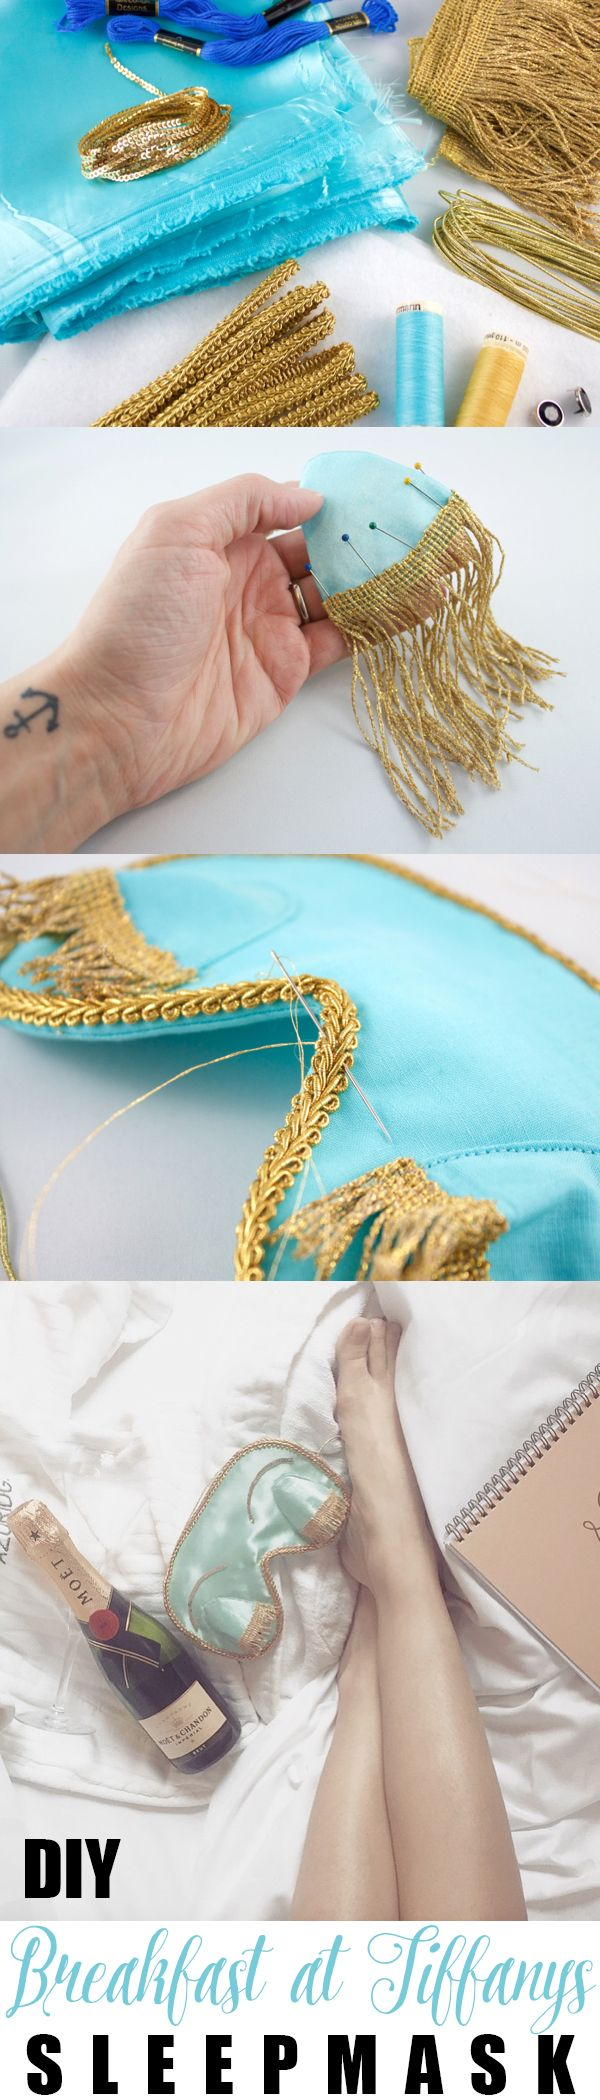 Breakfast At Tiffany's Sleep Mask!... Make your very own!...